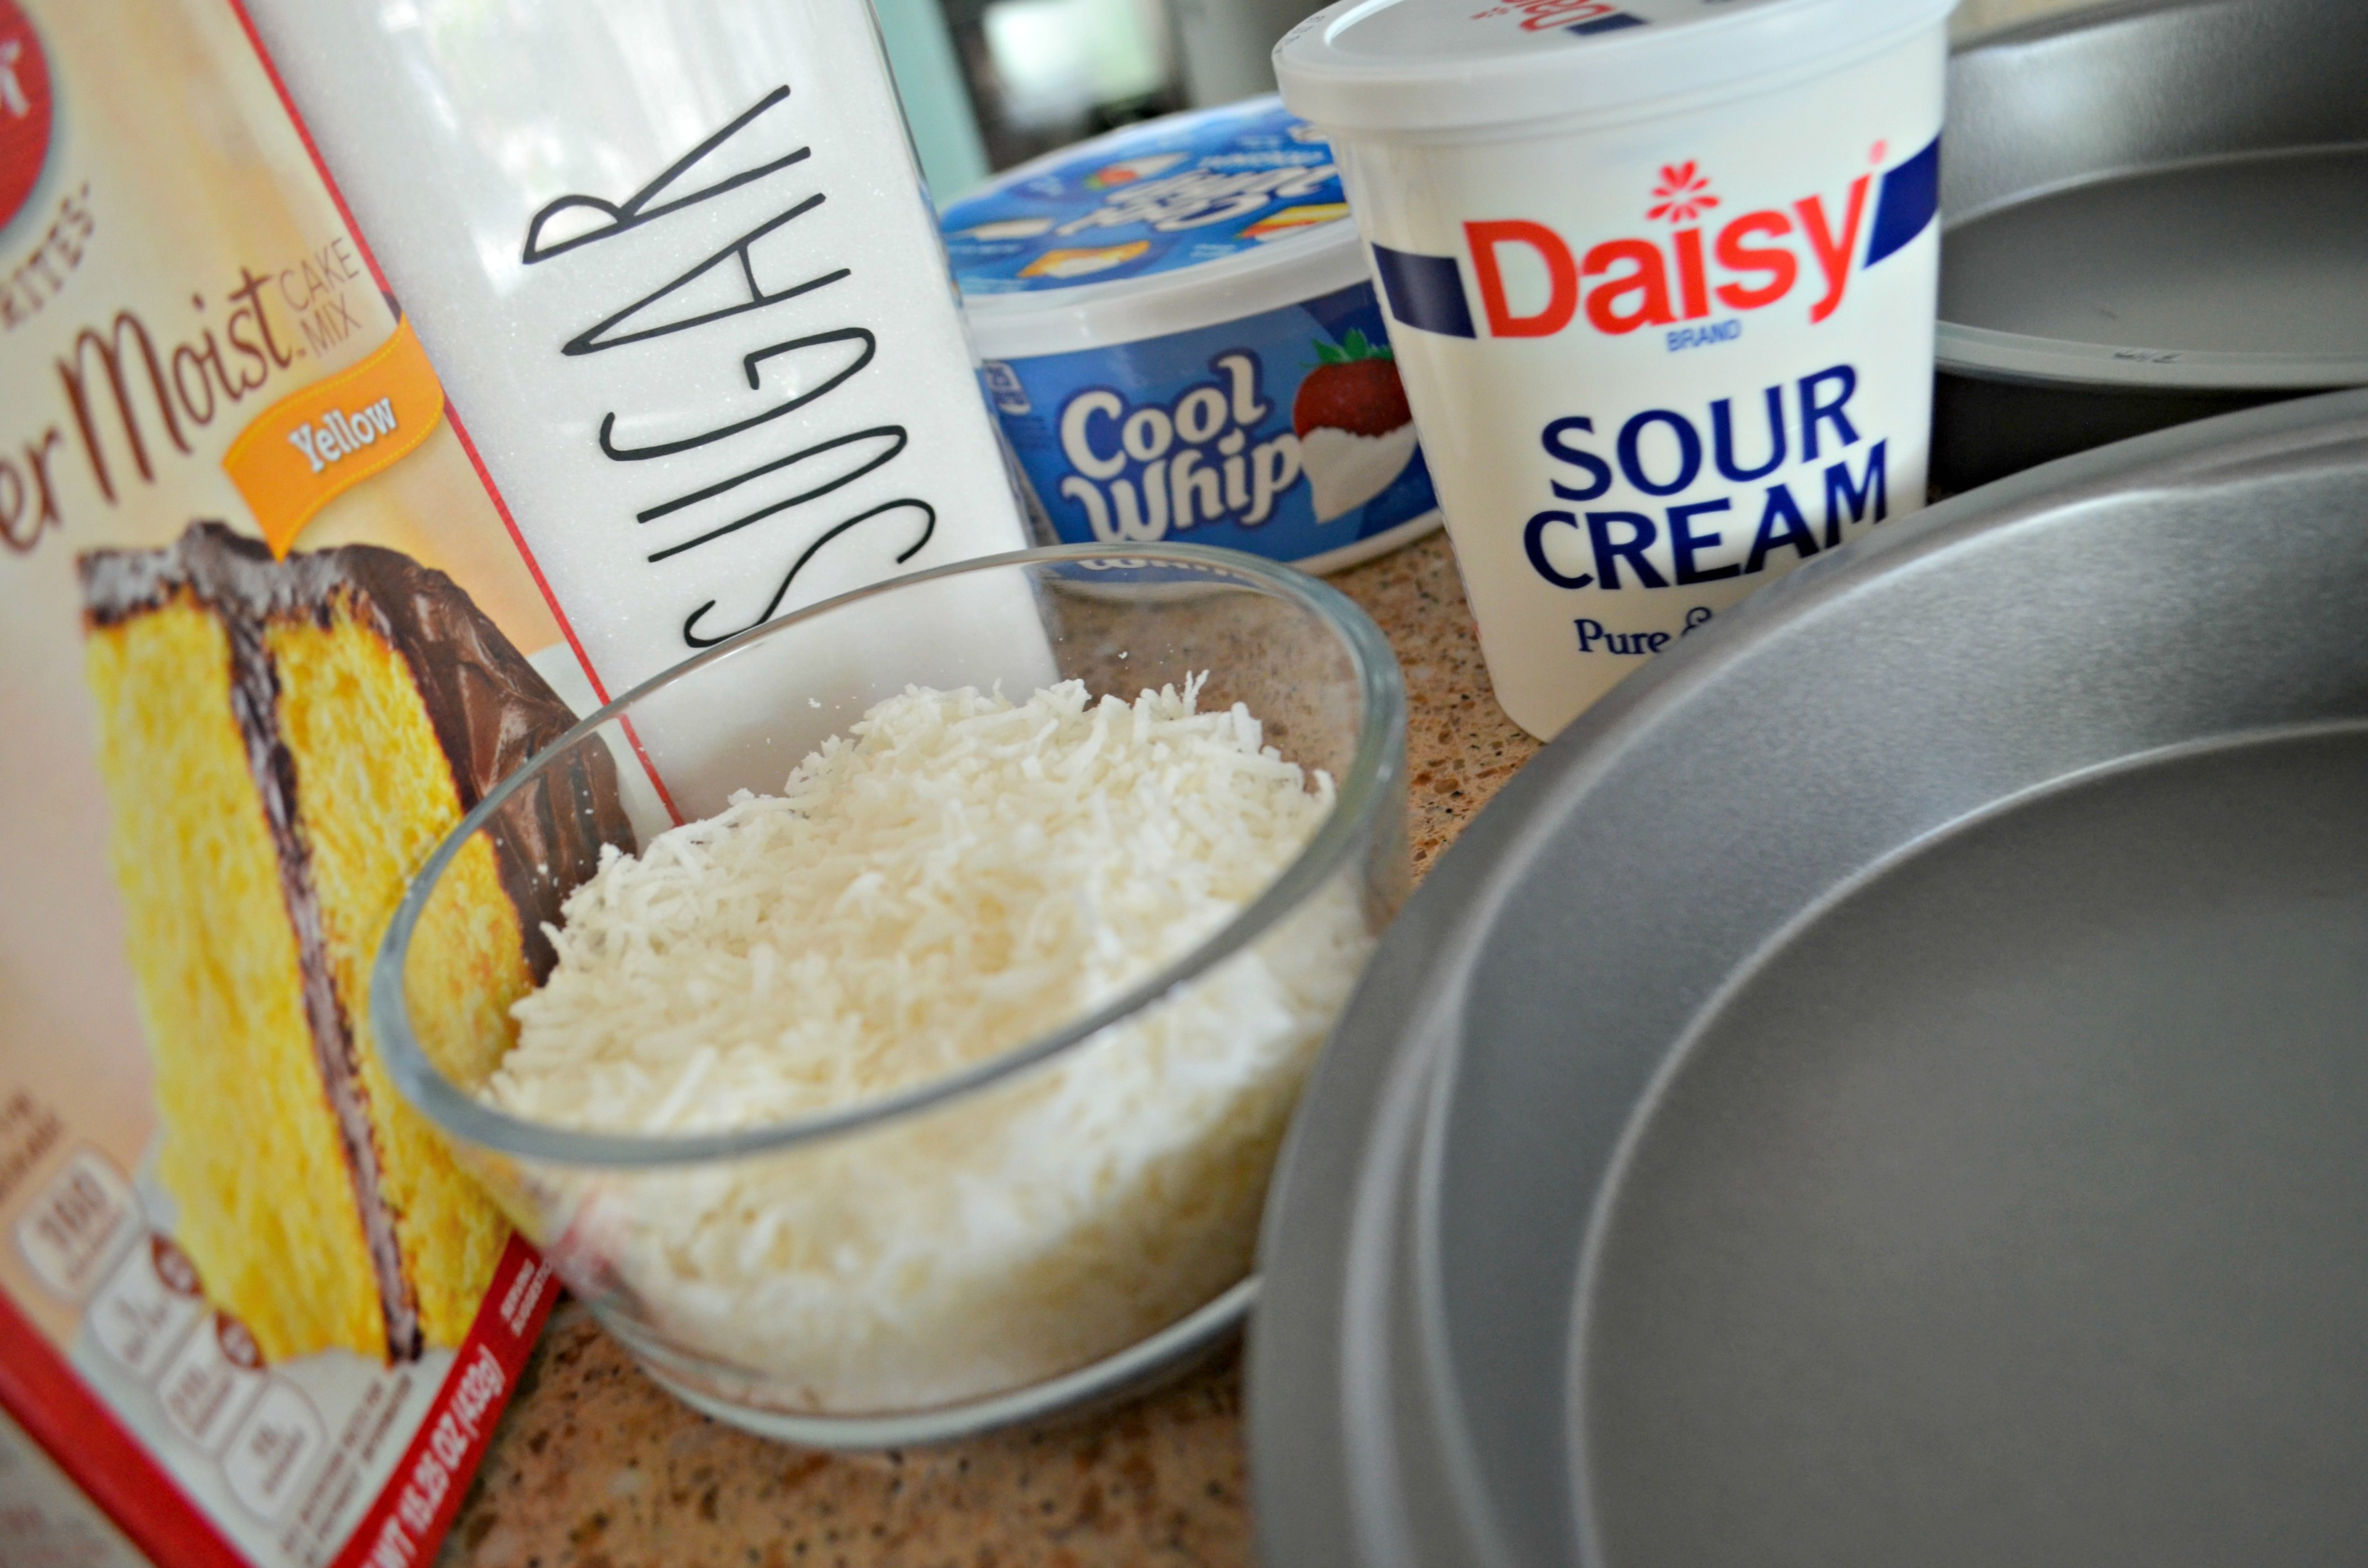 Simple ingredients for this easy coconut cake include a boxed cake mix and sour cream.